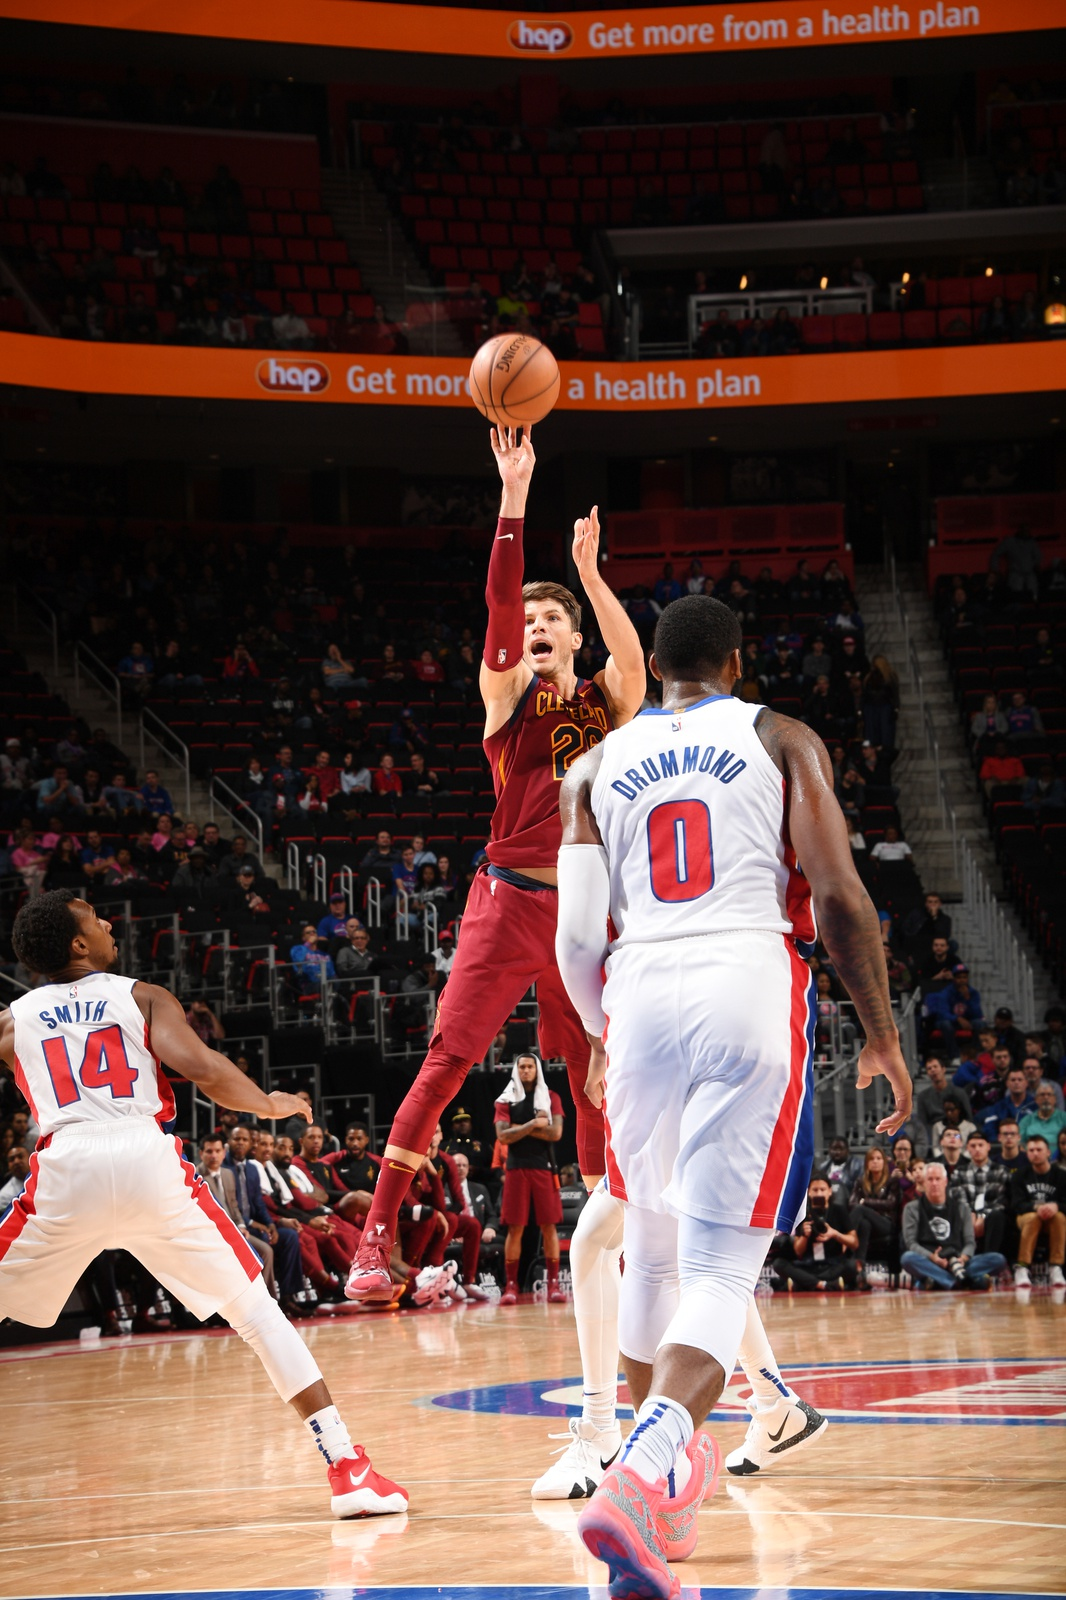 Kyle Korver #26 of the Cleveland Cavaliers shoots the ball against the Detroit Pistons on October 25, 2018 at Little Caesars Arena in Detroit, Michigan.